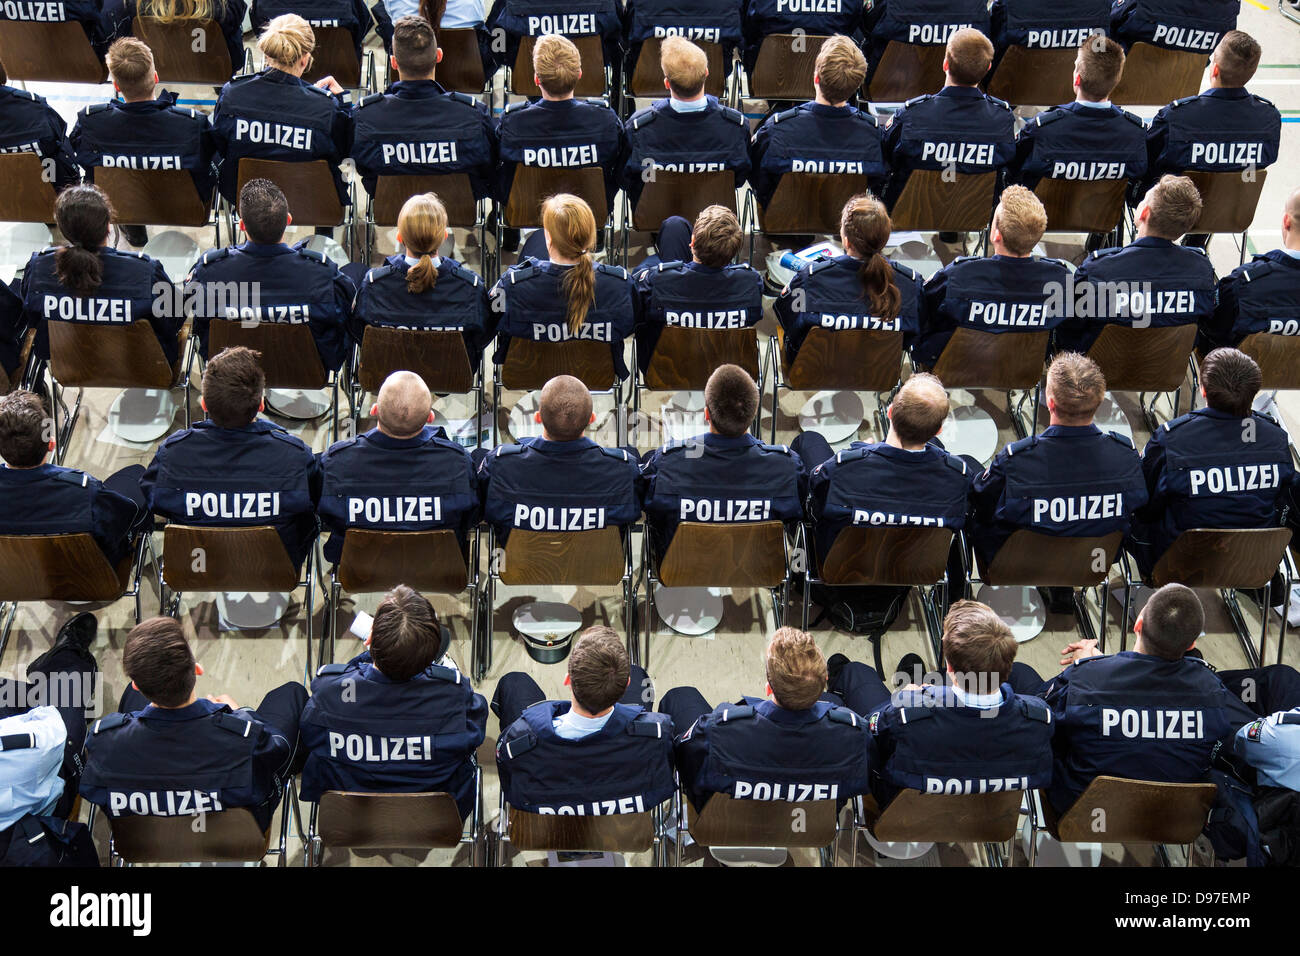 Police Commissioner candidates, trainees at the GermanPolice, sitting at a meeting in the auditorium. Stock Photo